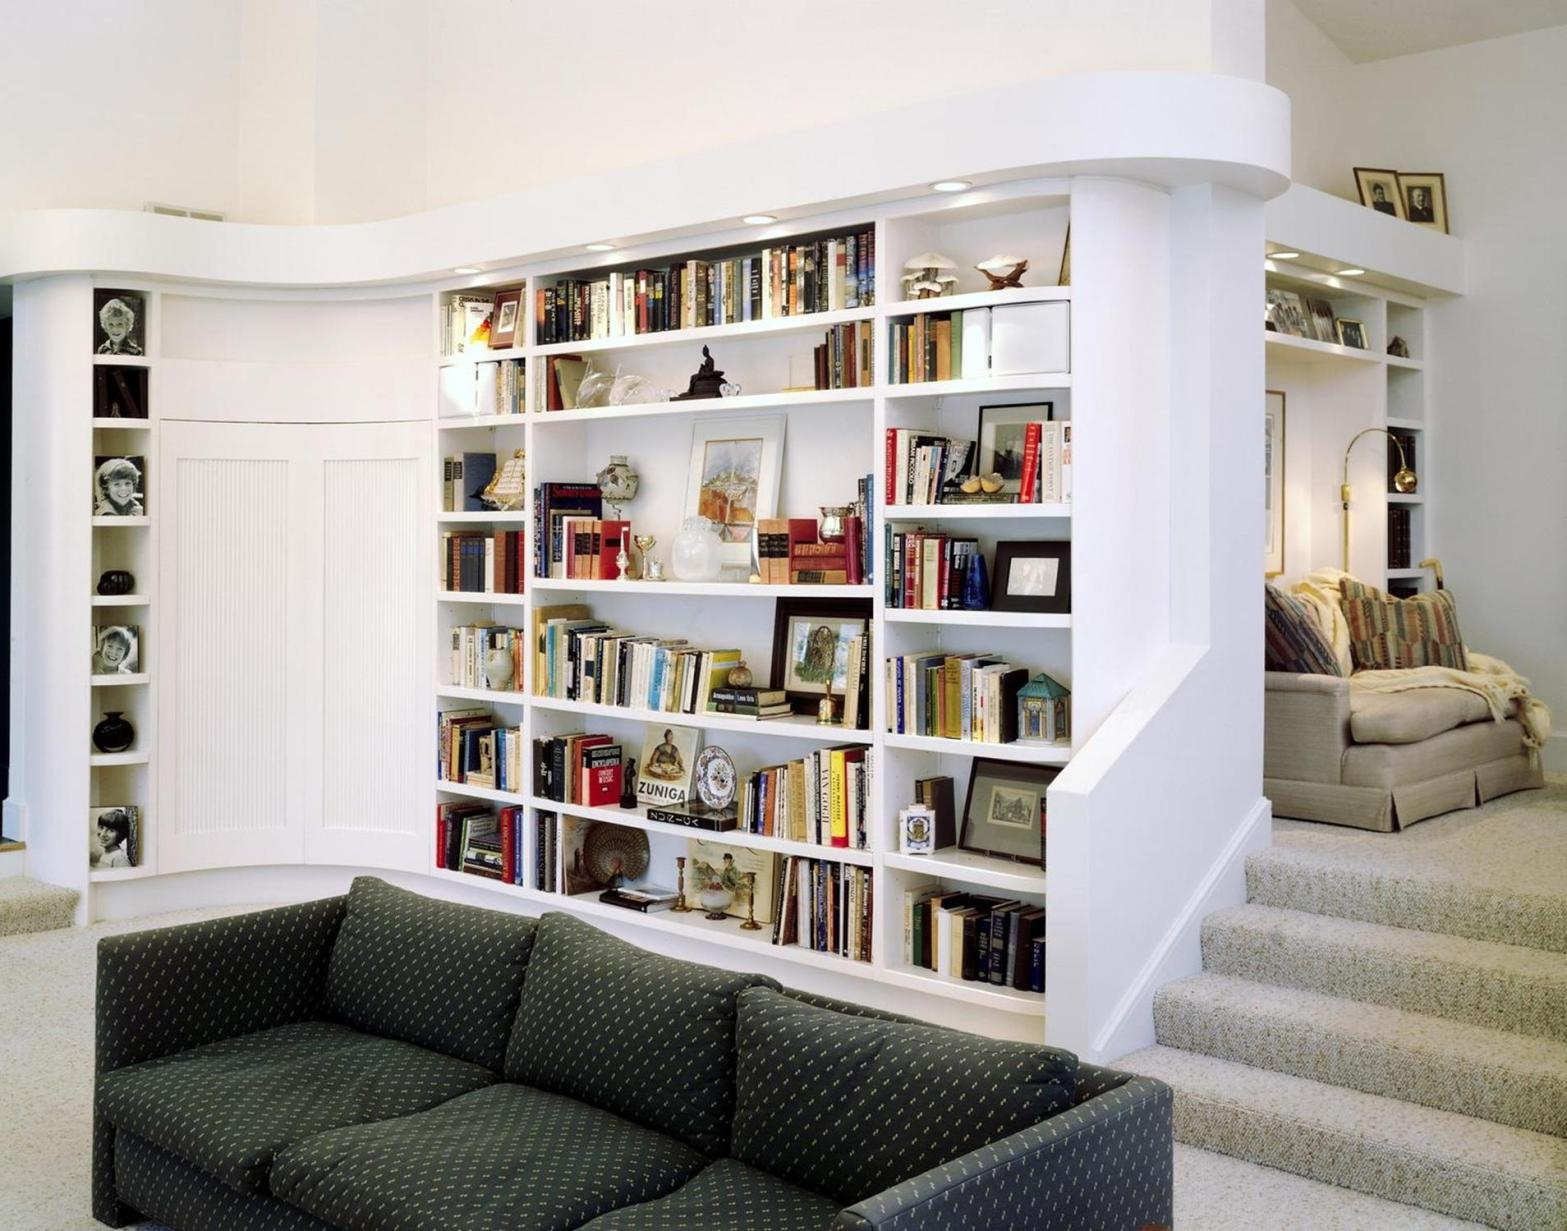 Perfect Bookshelves For Small Spaces and Decor Ideas 8